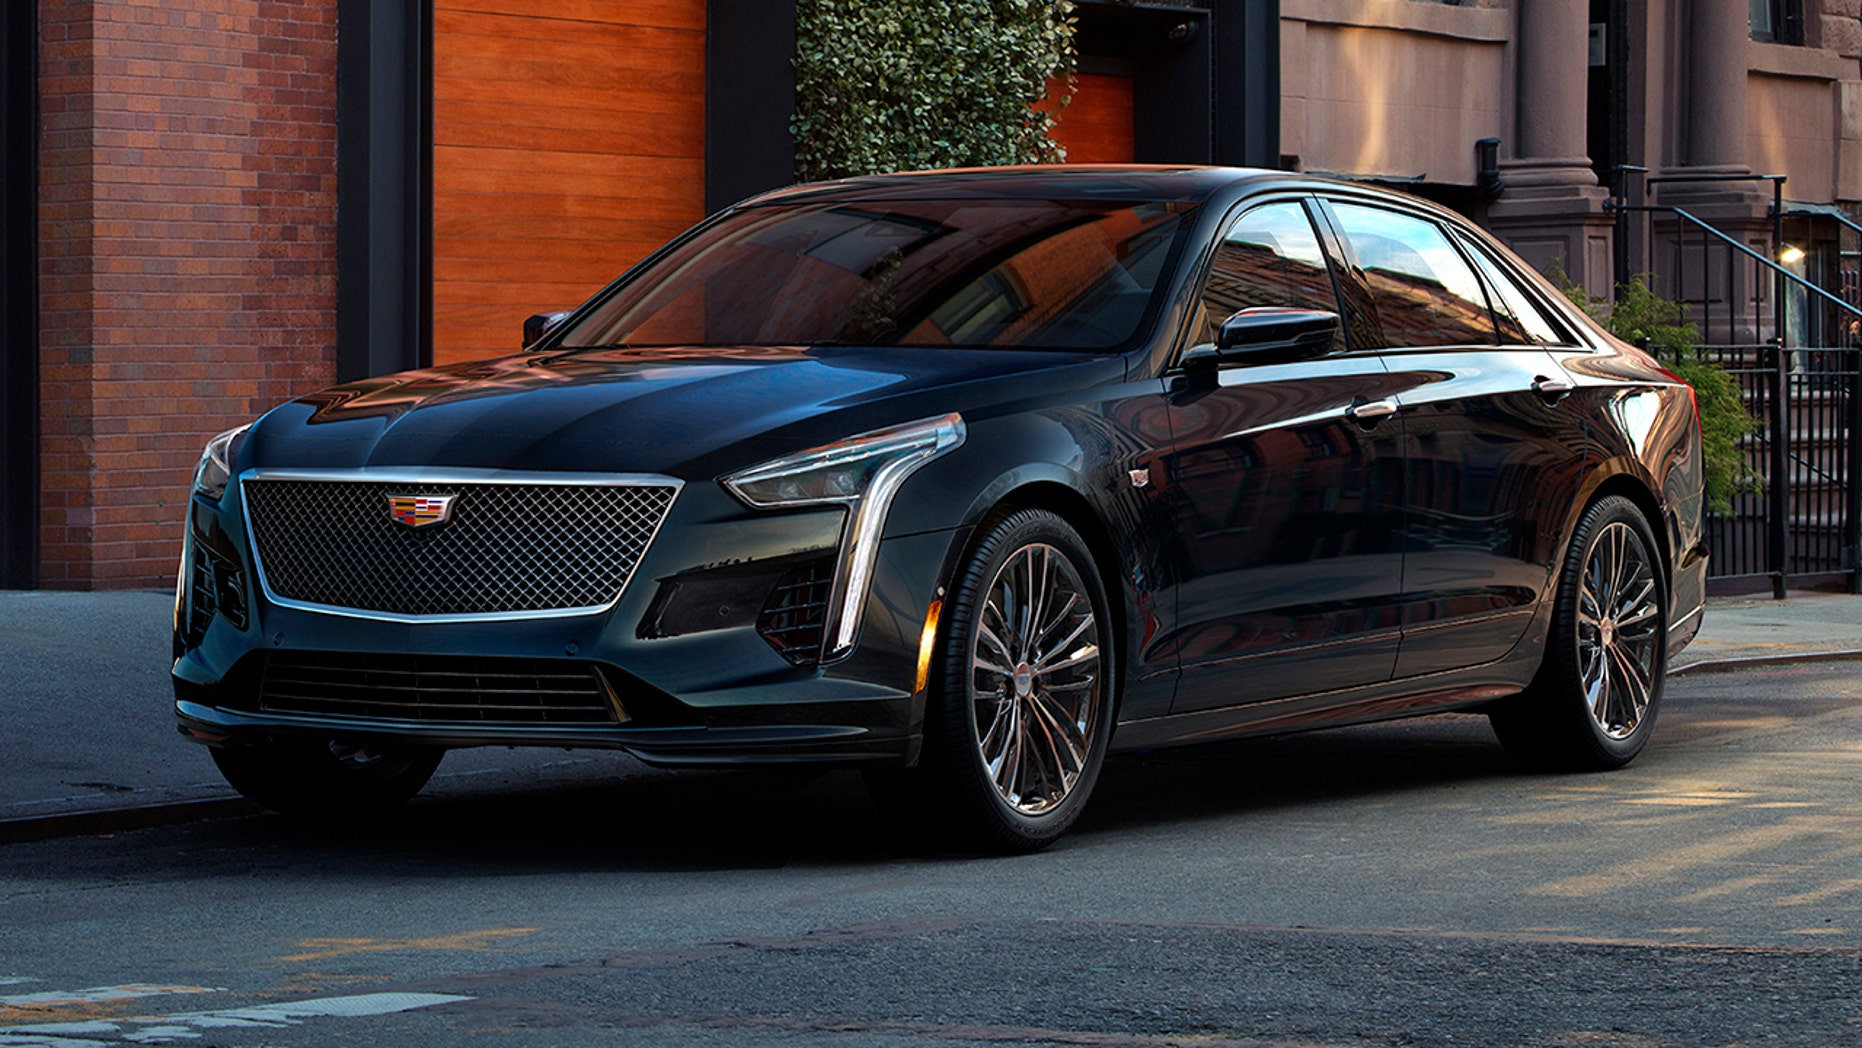 2019 Cadillac Ct6 V Sport Revealed With All New Twin Turbo V8 Fox News